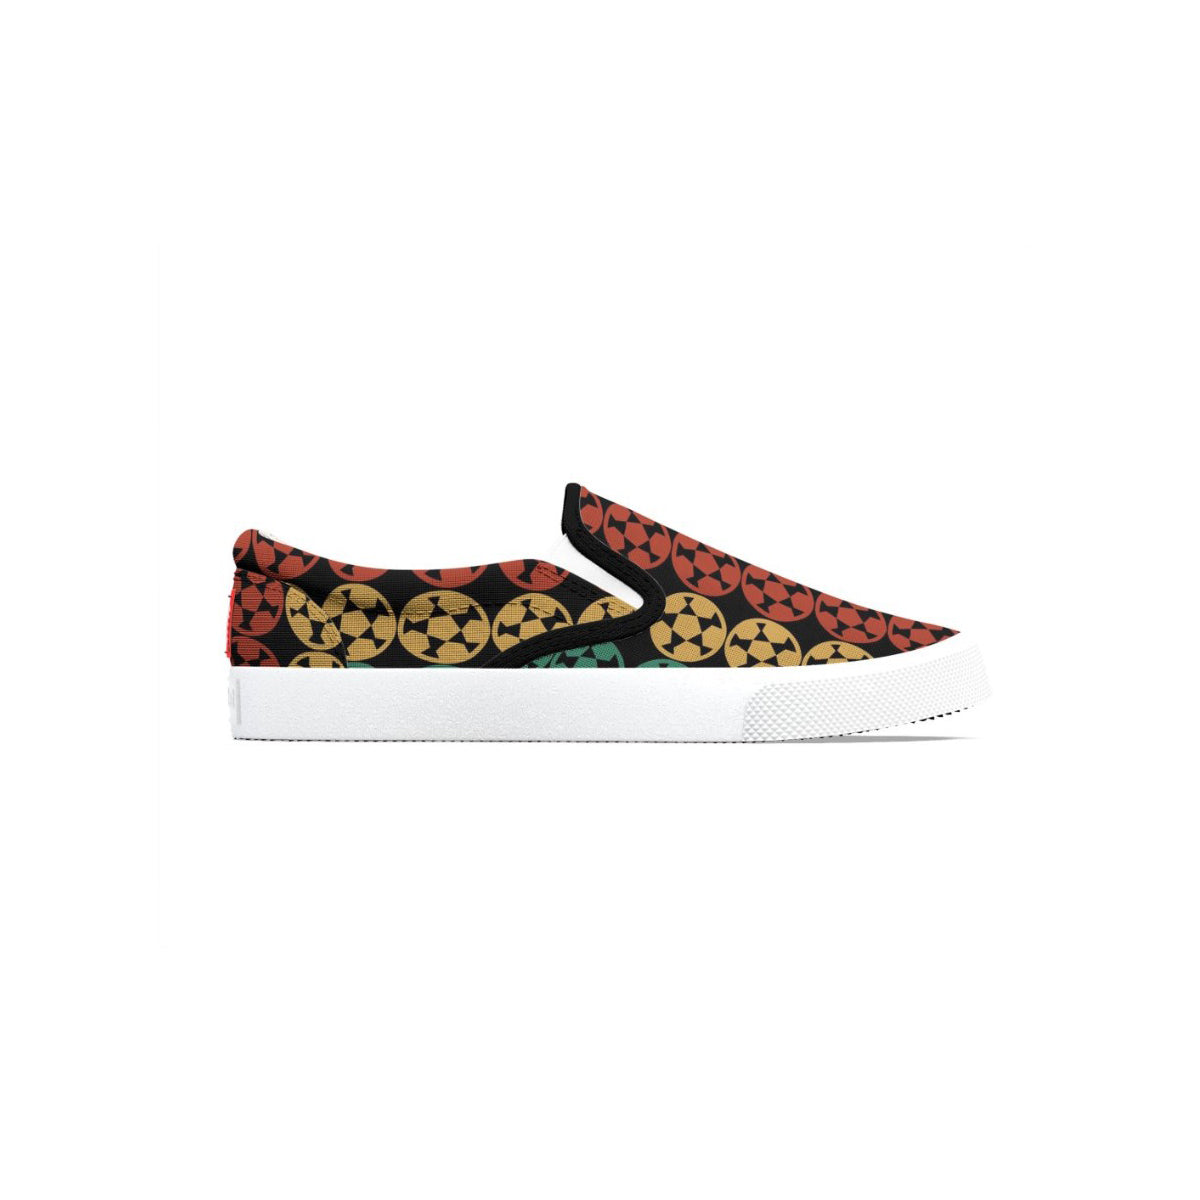 Sqd Bllrz Ball Slip Ons BL by Squared Limited